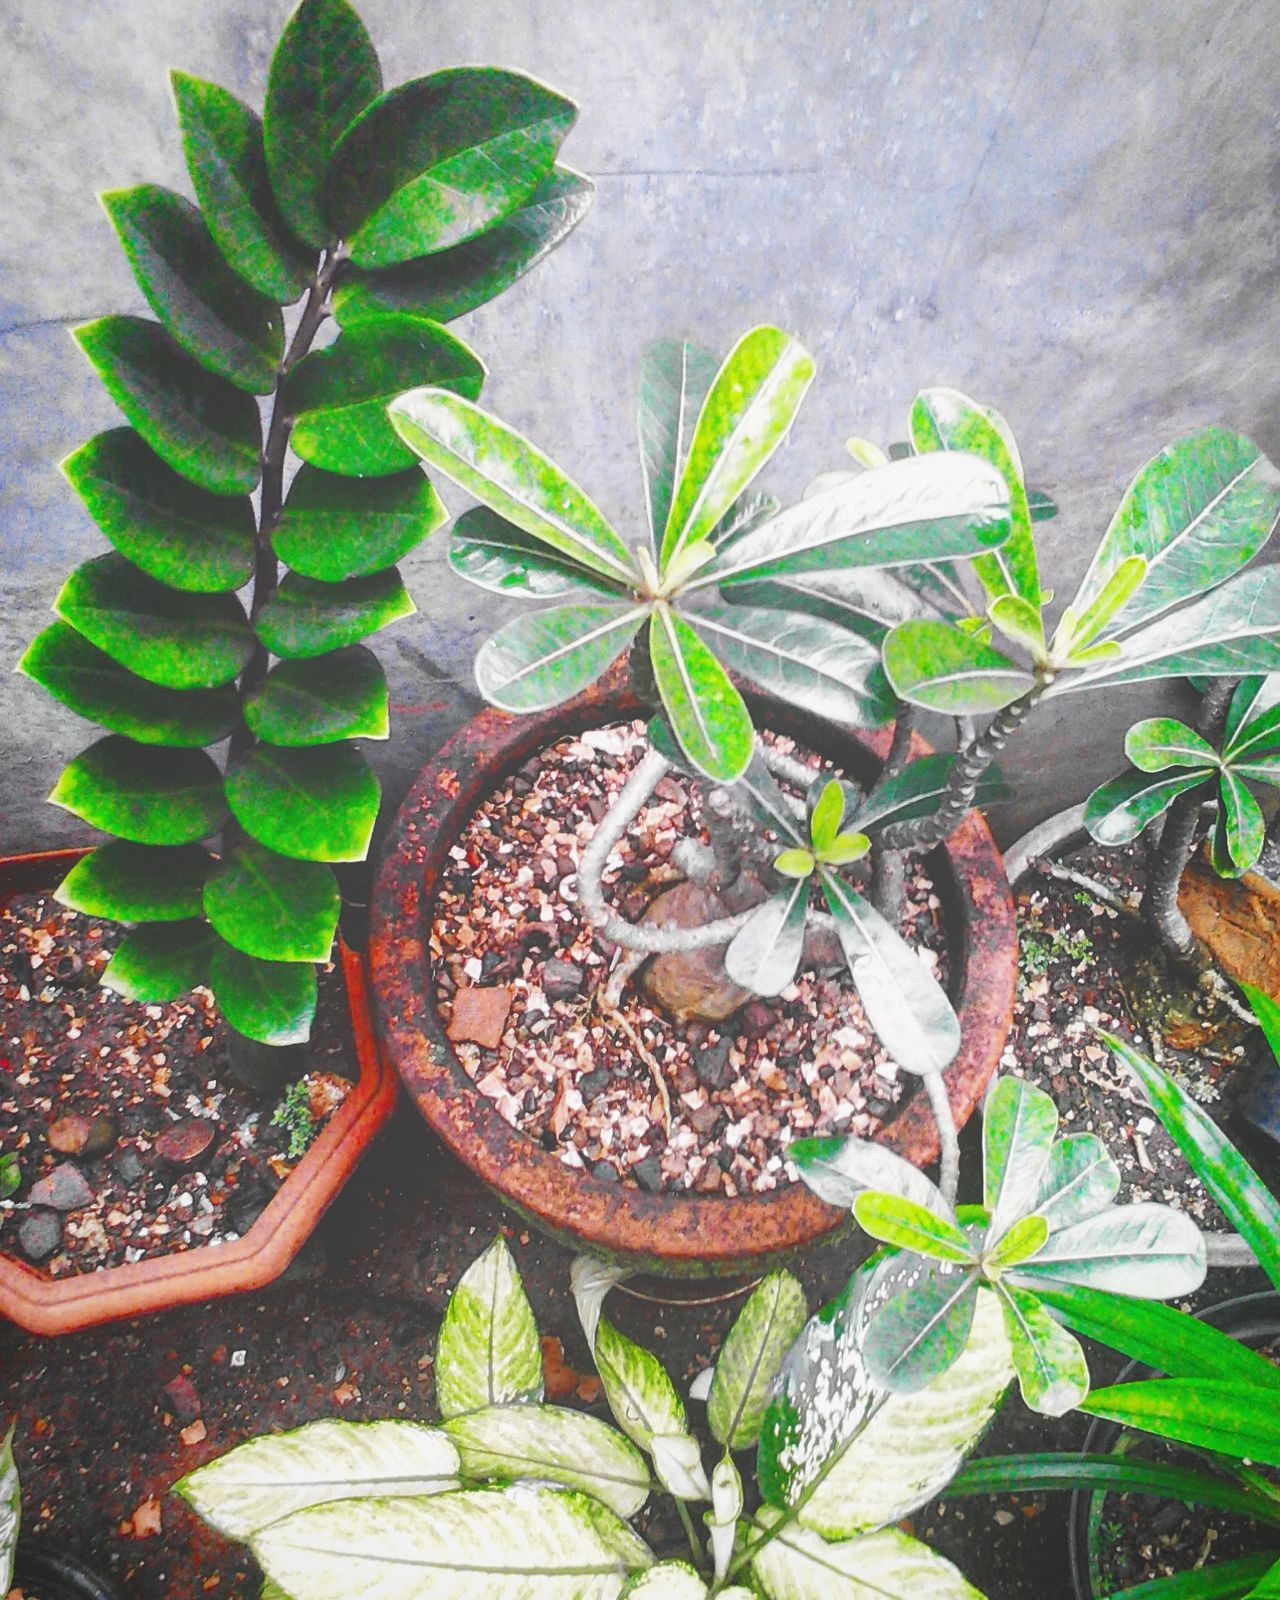 Plant Growth Leaf Nature Day No People Beauty In Nature Green Color Close-up Outdoors Animal Themes Freshness Fragility Tree Cactus Botanical Garden